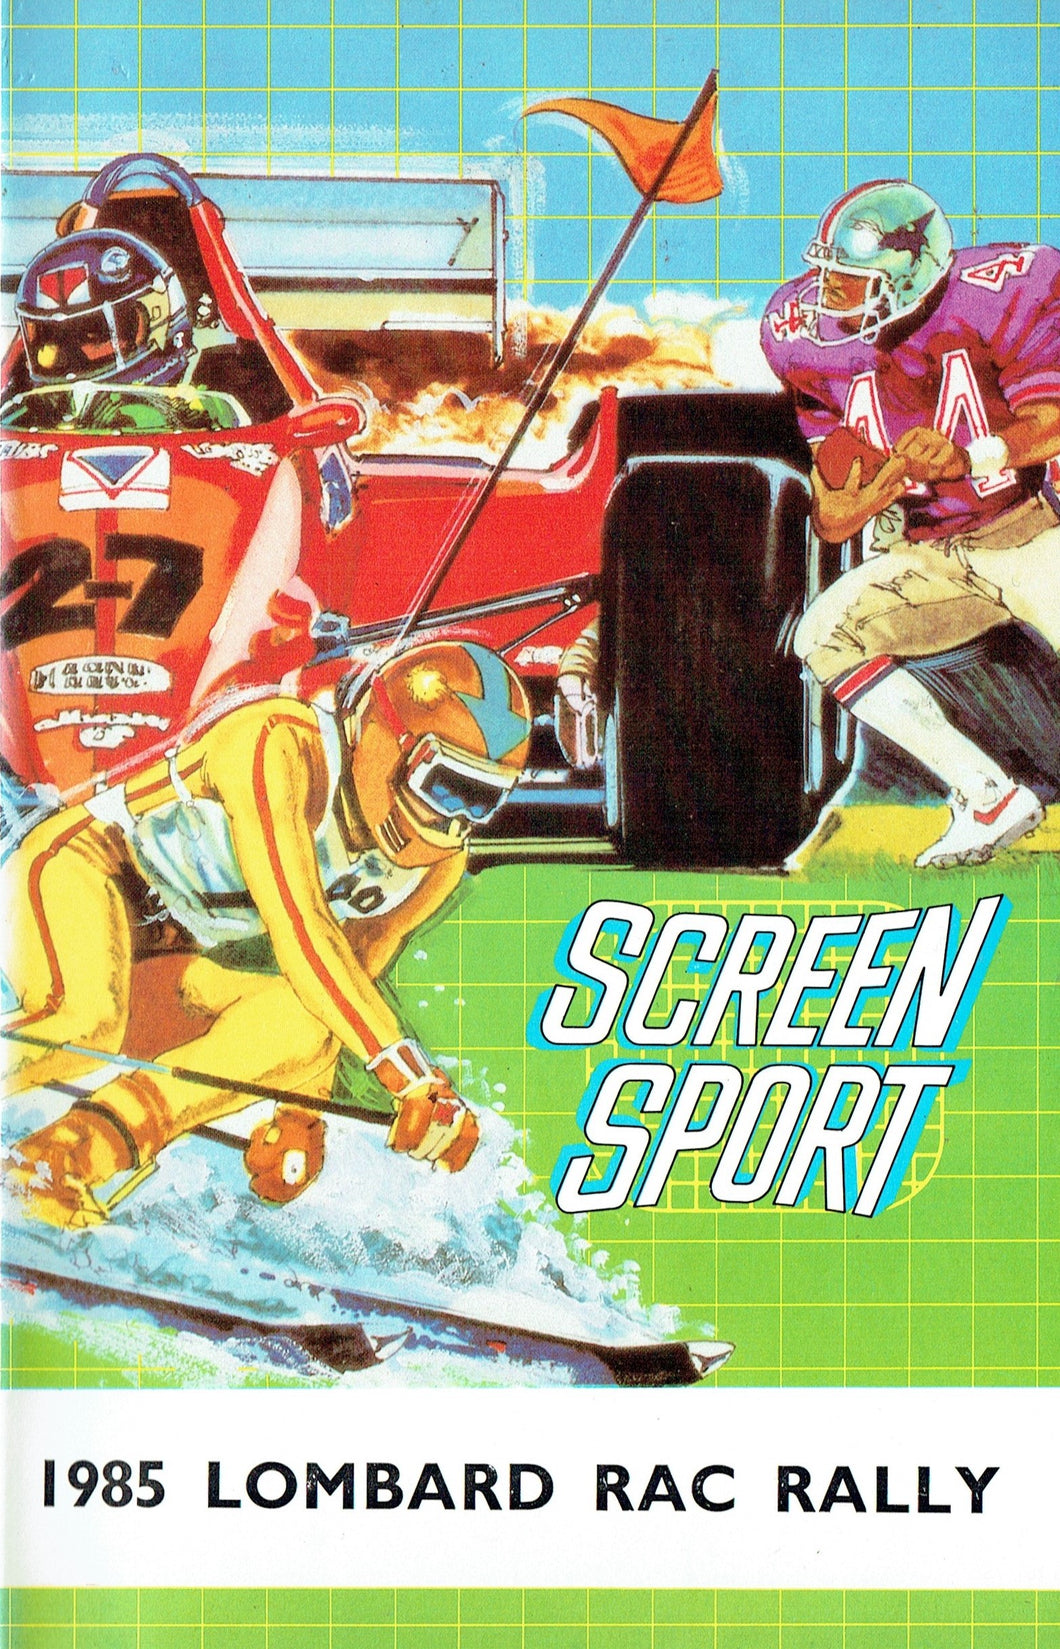 1985 Lombard RAC Rally - Screen Sport [VHS]